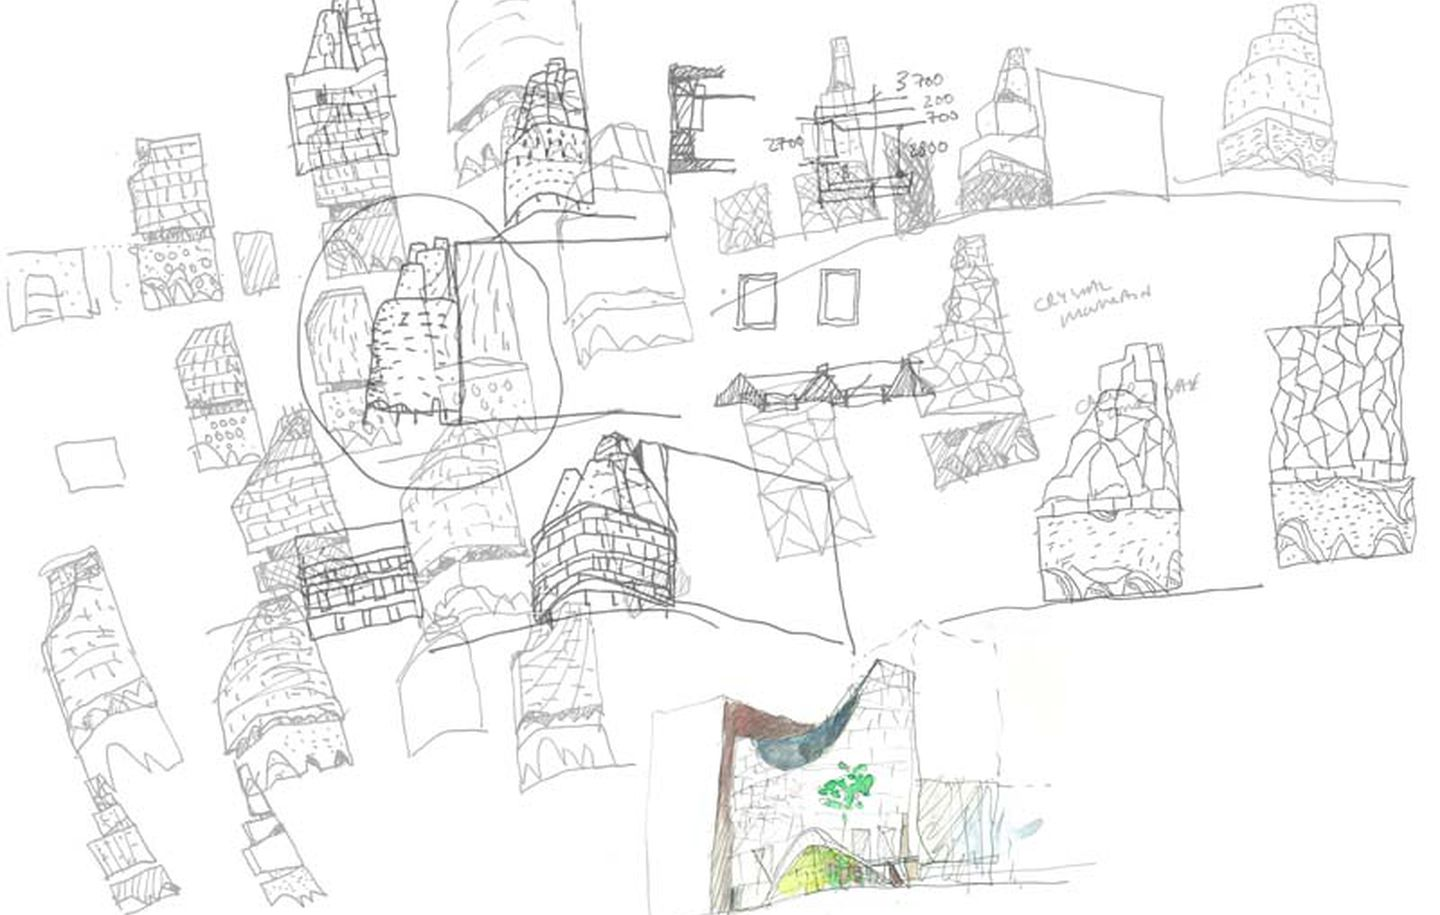 hand drawn concept sketches of commercial tower in Sydney Australia designed by Durbach Block Jaggers Architects